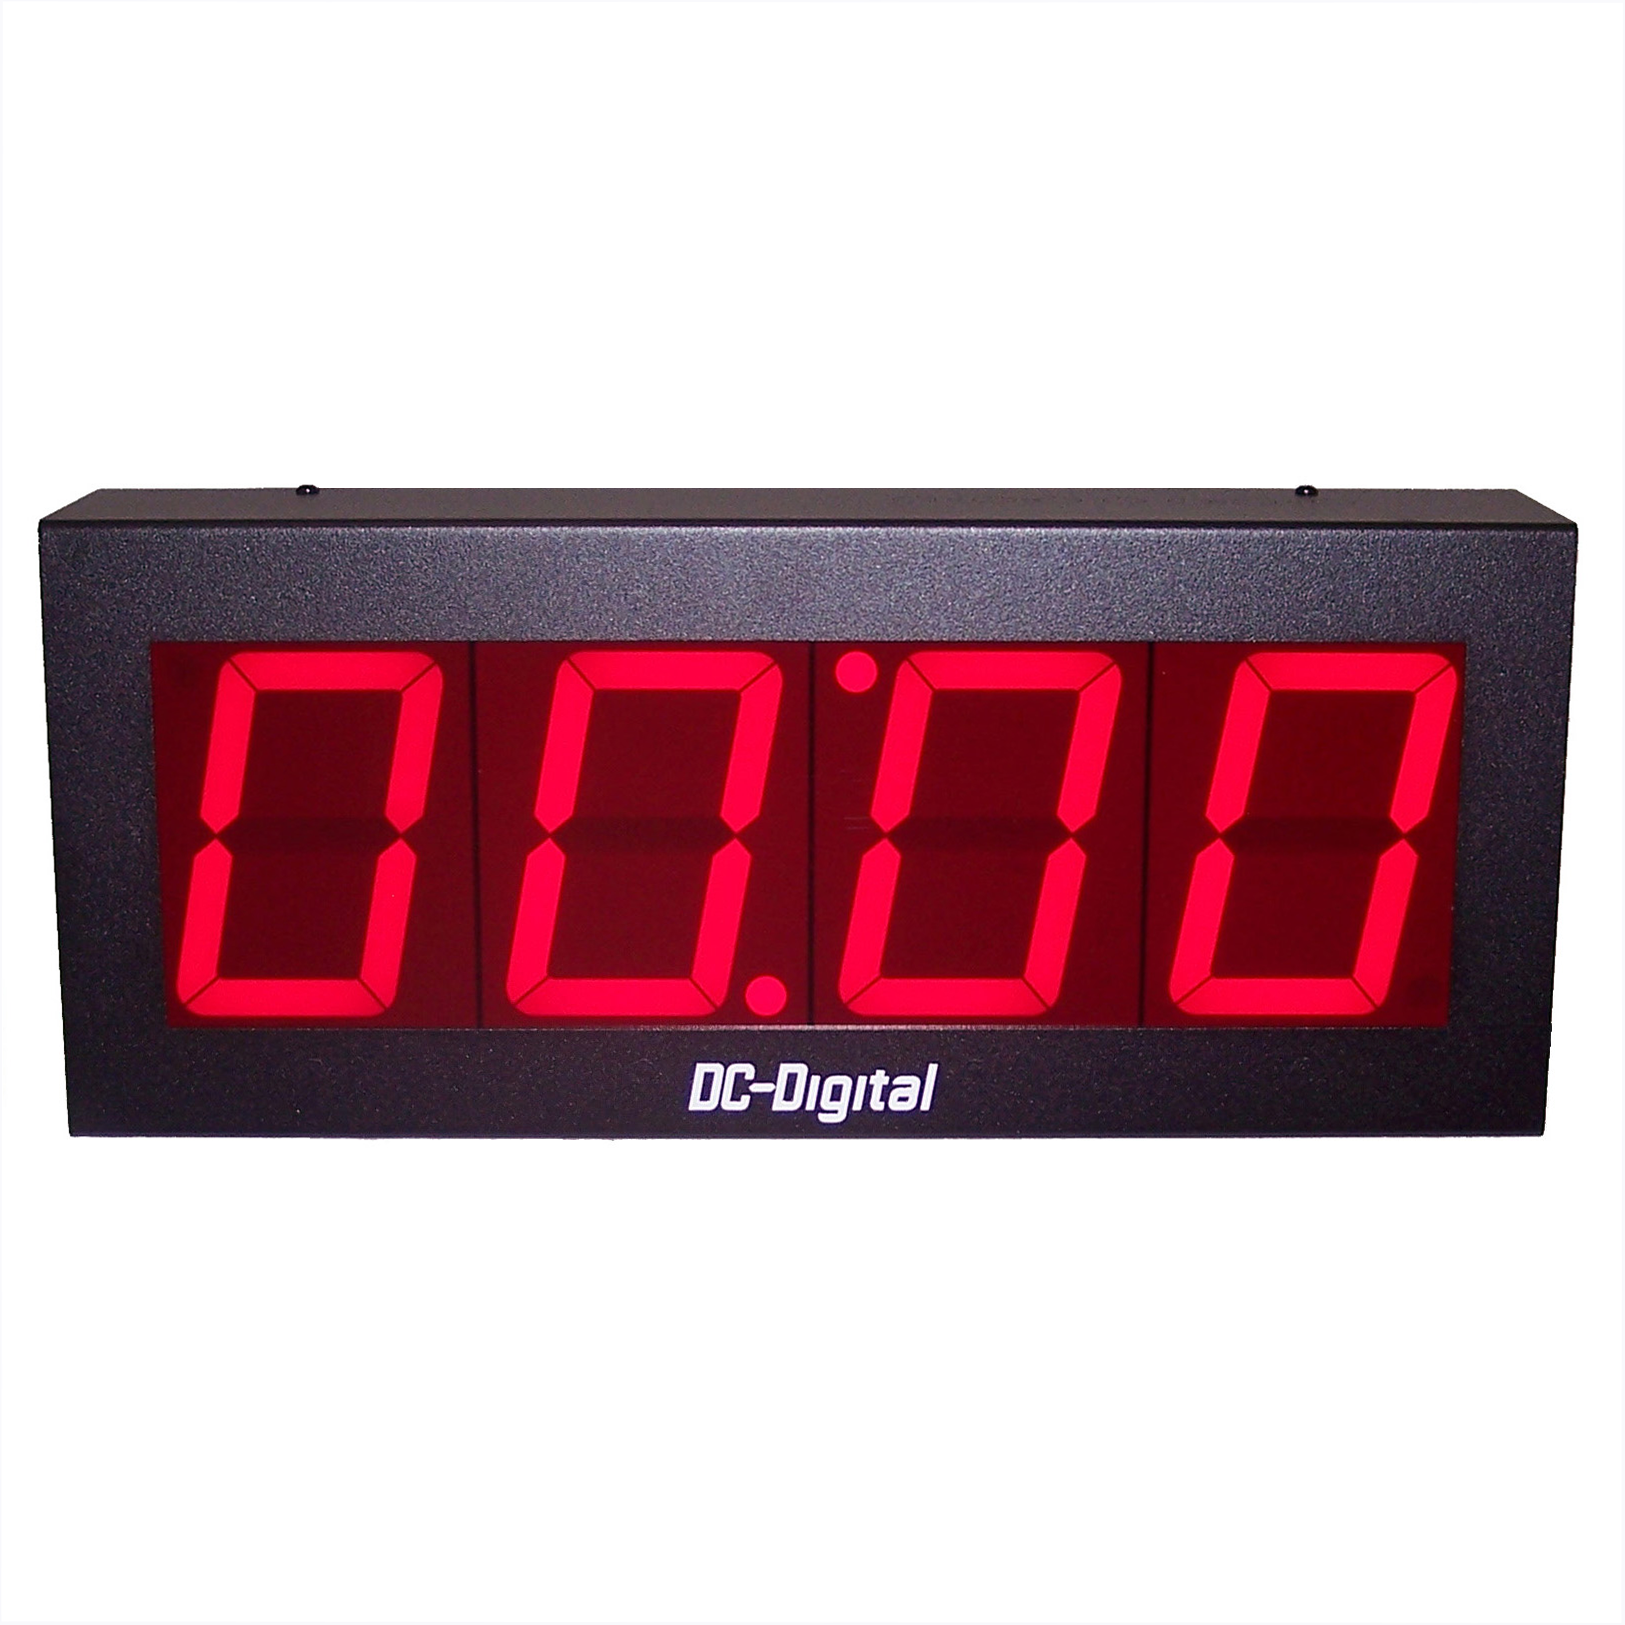 DC-40N-T-DN-Computer-Controlled-Network-Countdown-Timer-4-Inch-Digits